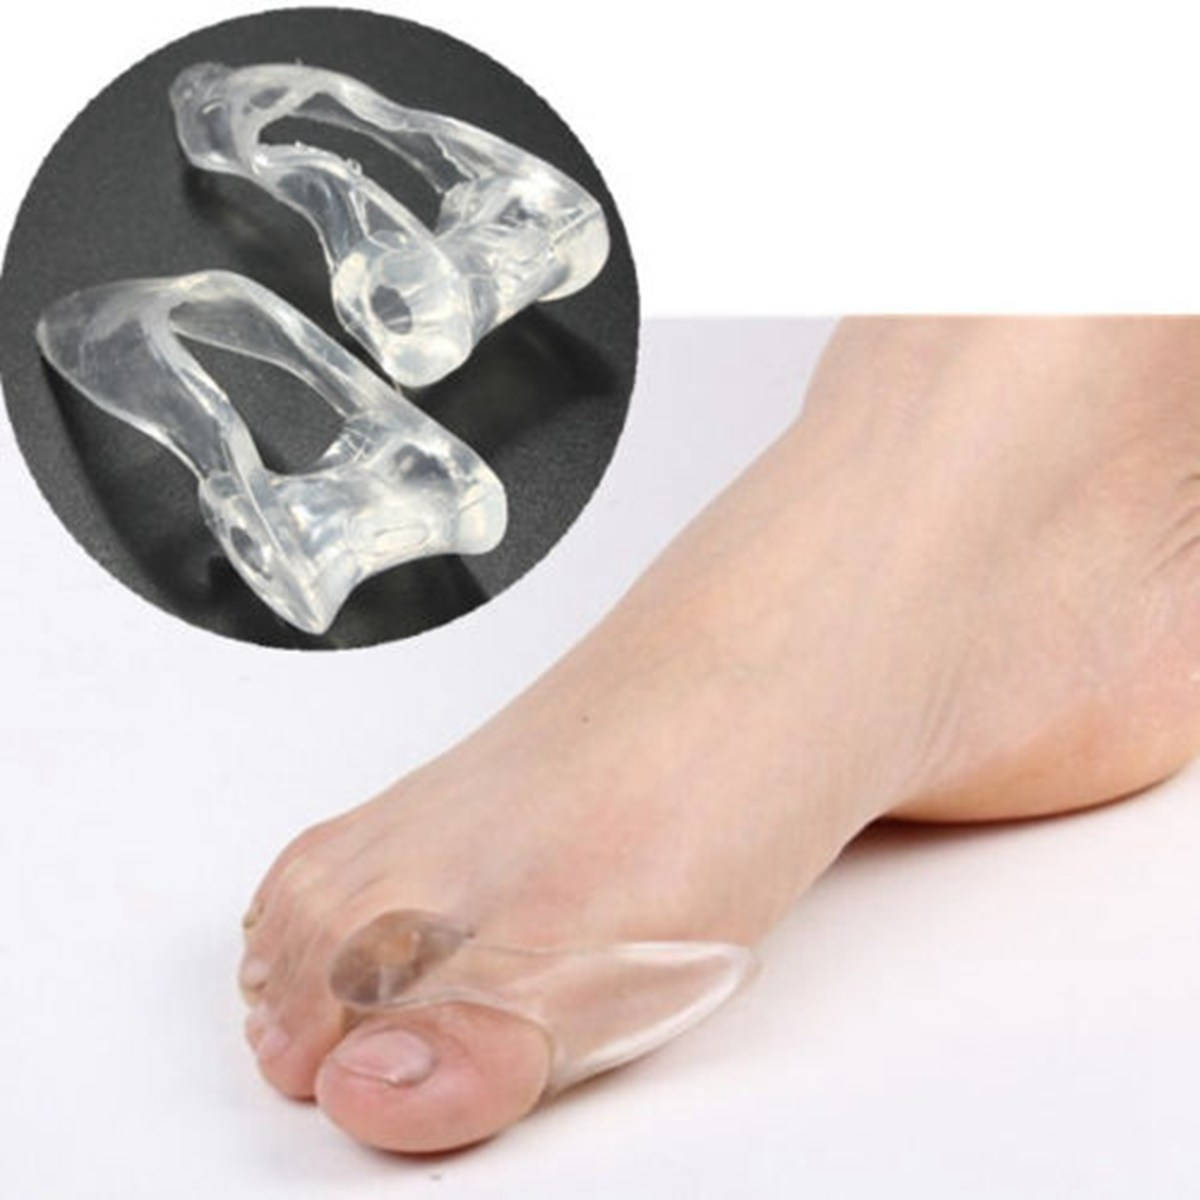 BSAID 1 Pair Foot Toe Separator Thumb Valgus Protector Bunion Adjuster Gel Silicone Soft Toes Corrector Pads  Shoe Insert Insole